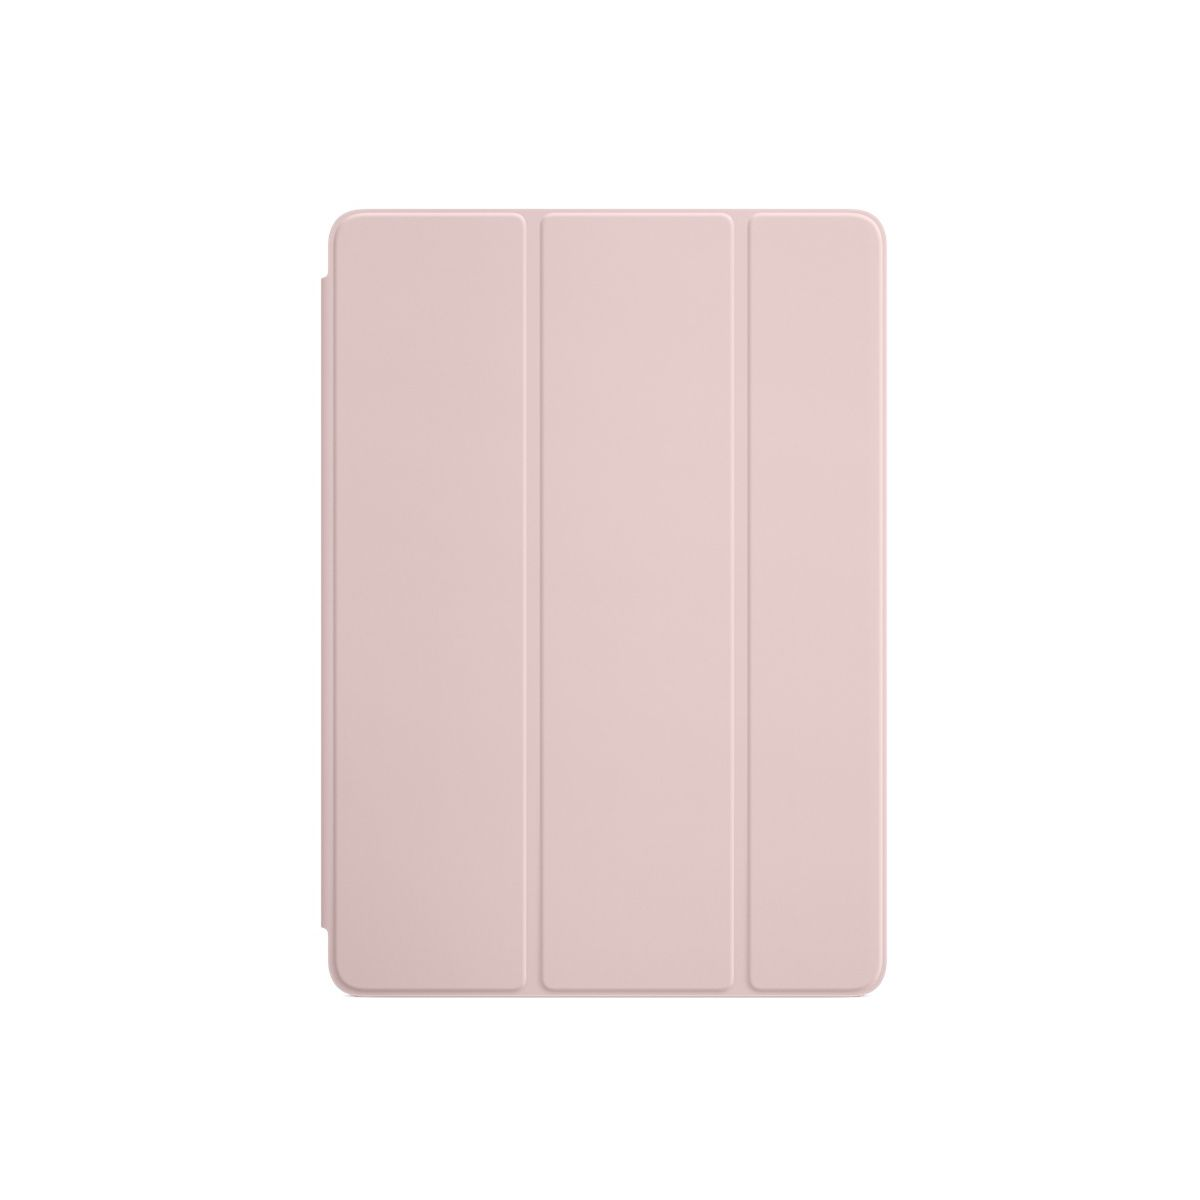 Etui APPLE iPad 9.7 génération 5 et 6 rose (photo)